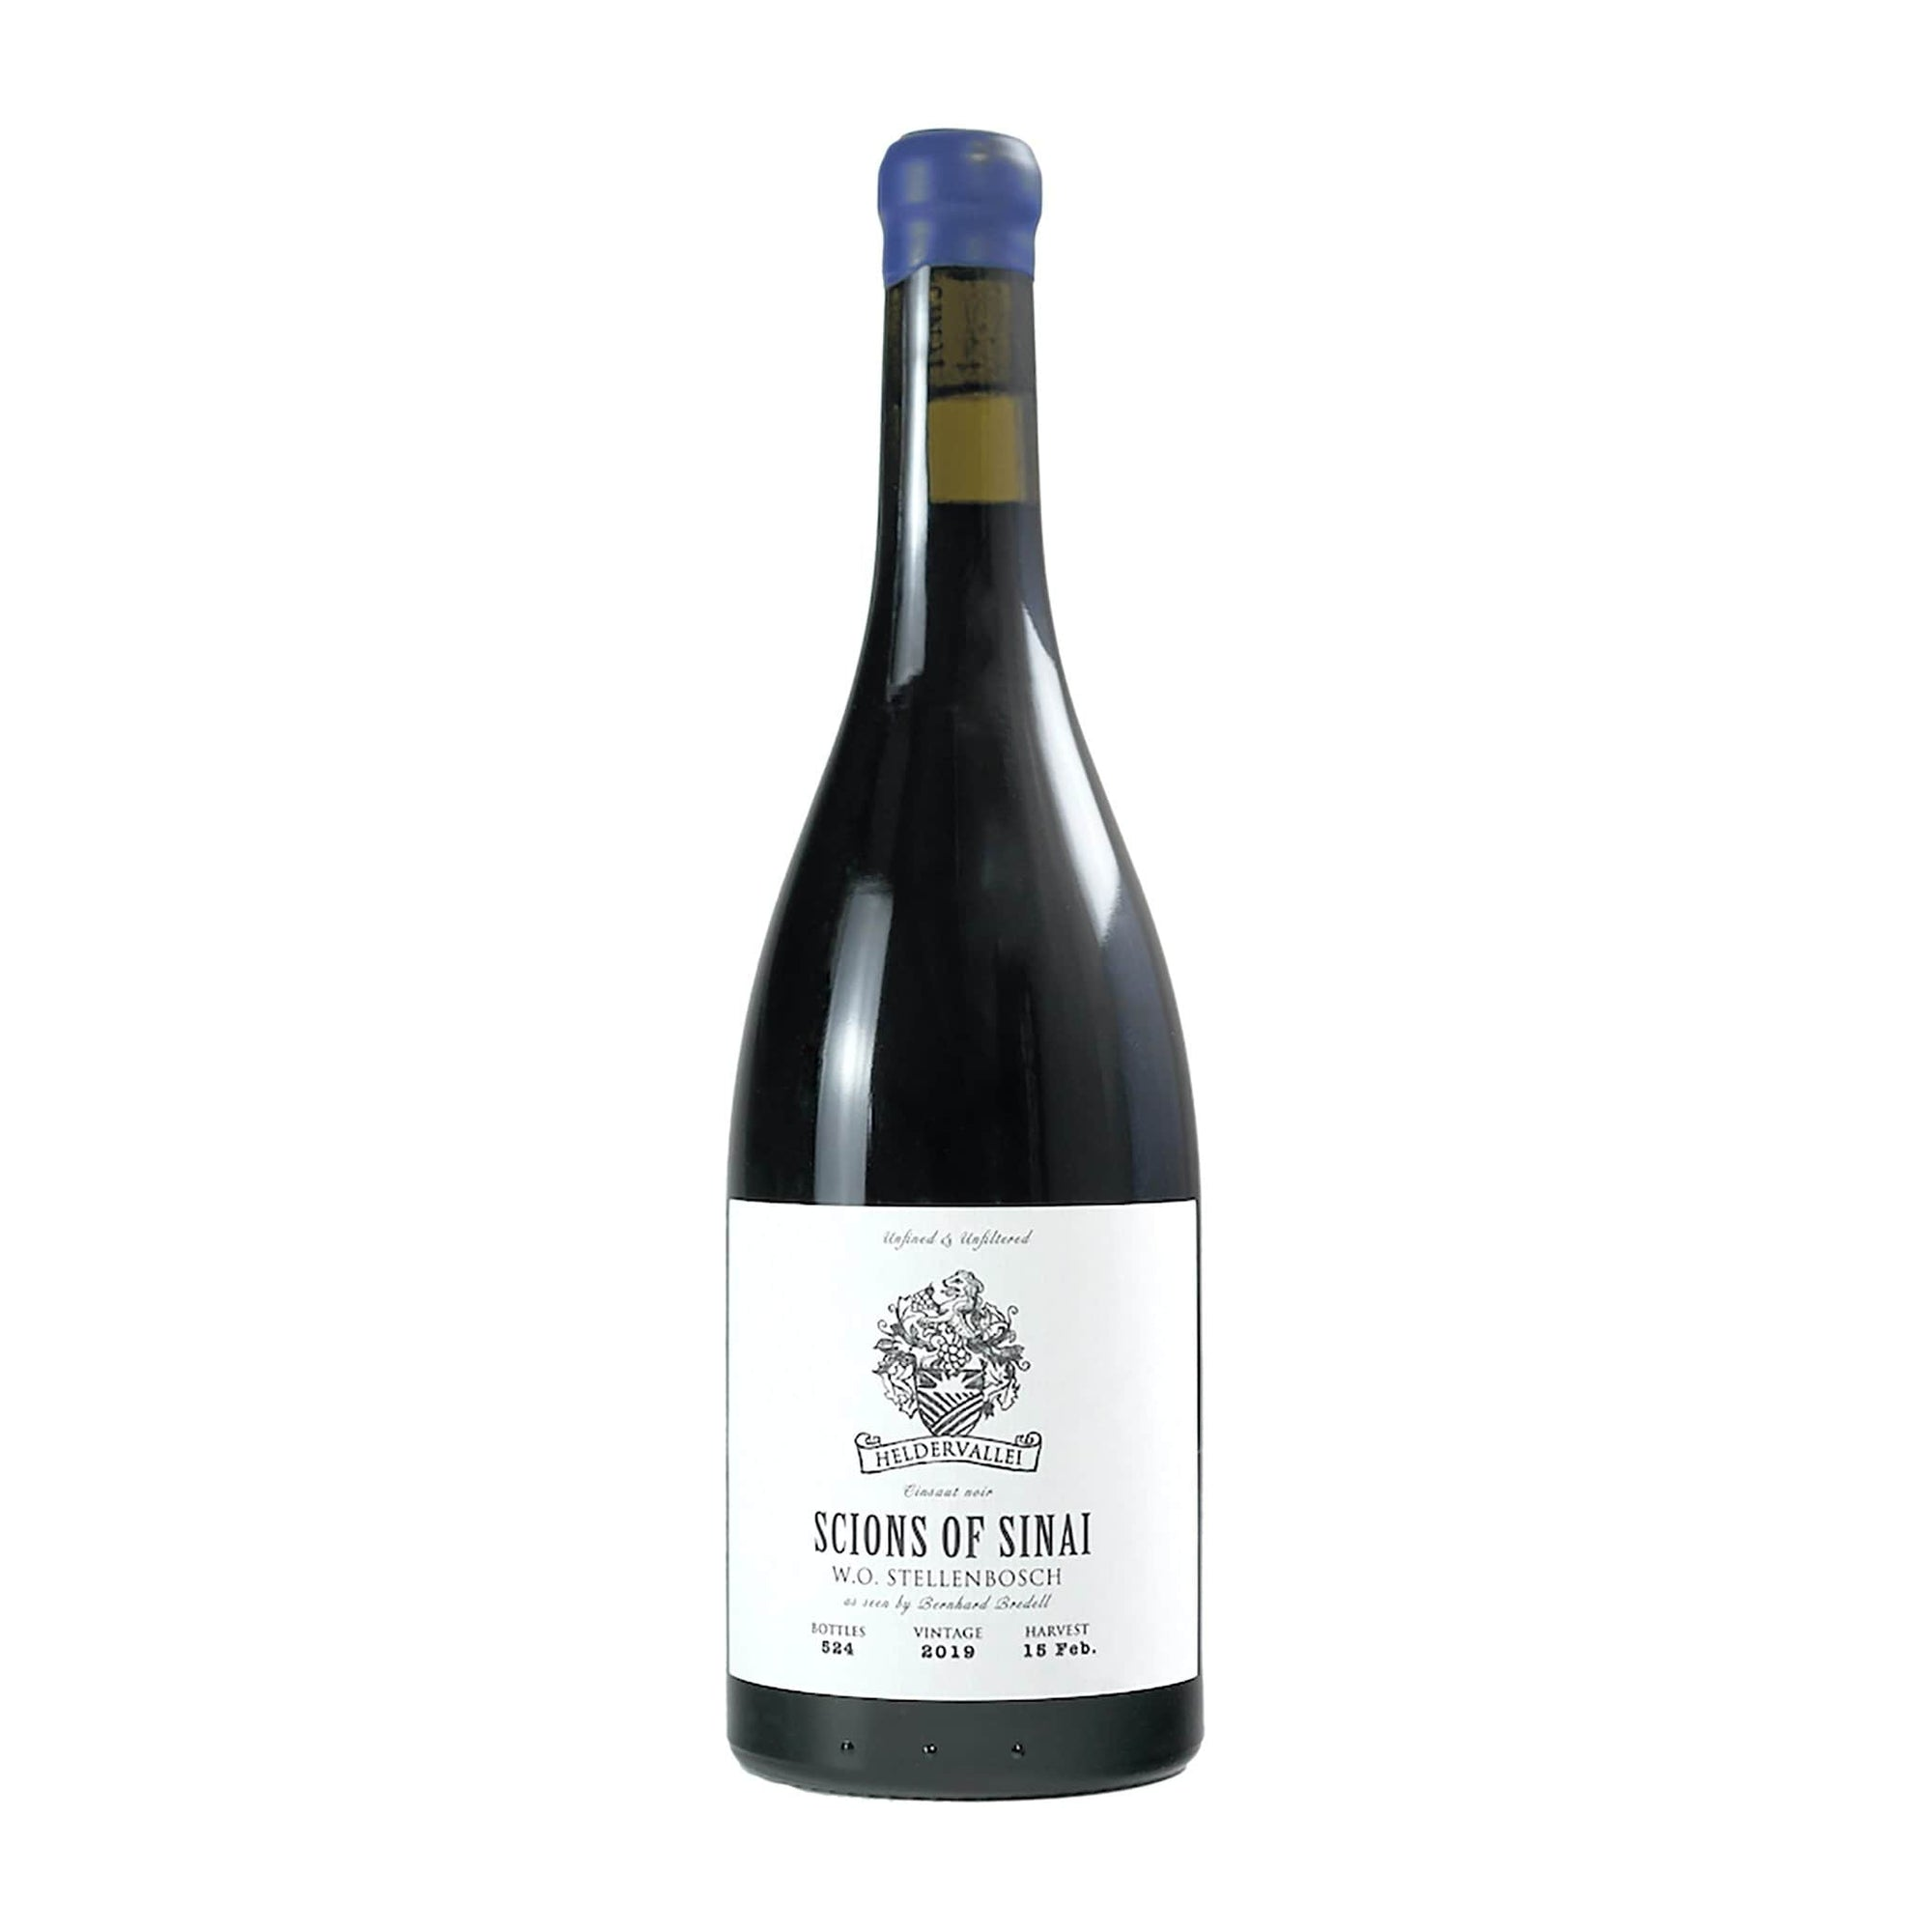 Red Wine Scions of Sinai 'Heldervallei' Cinsaut 2019